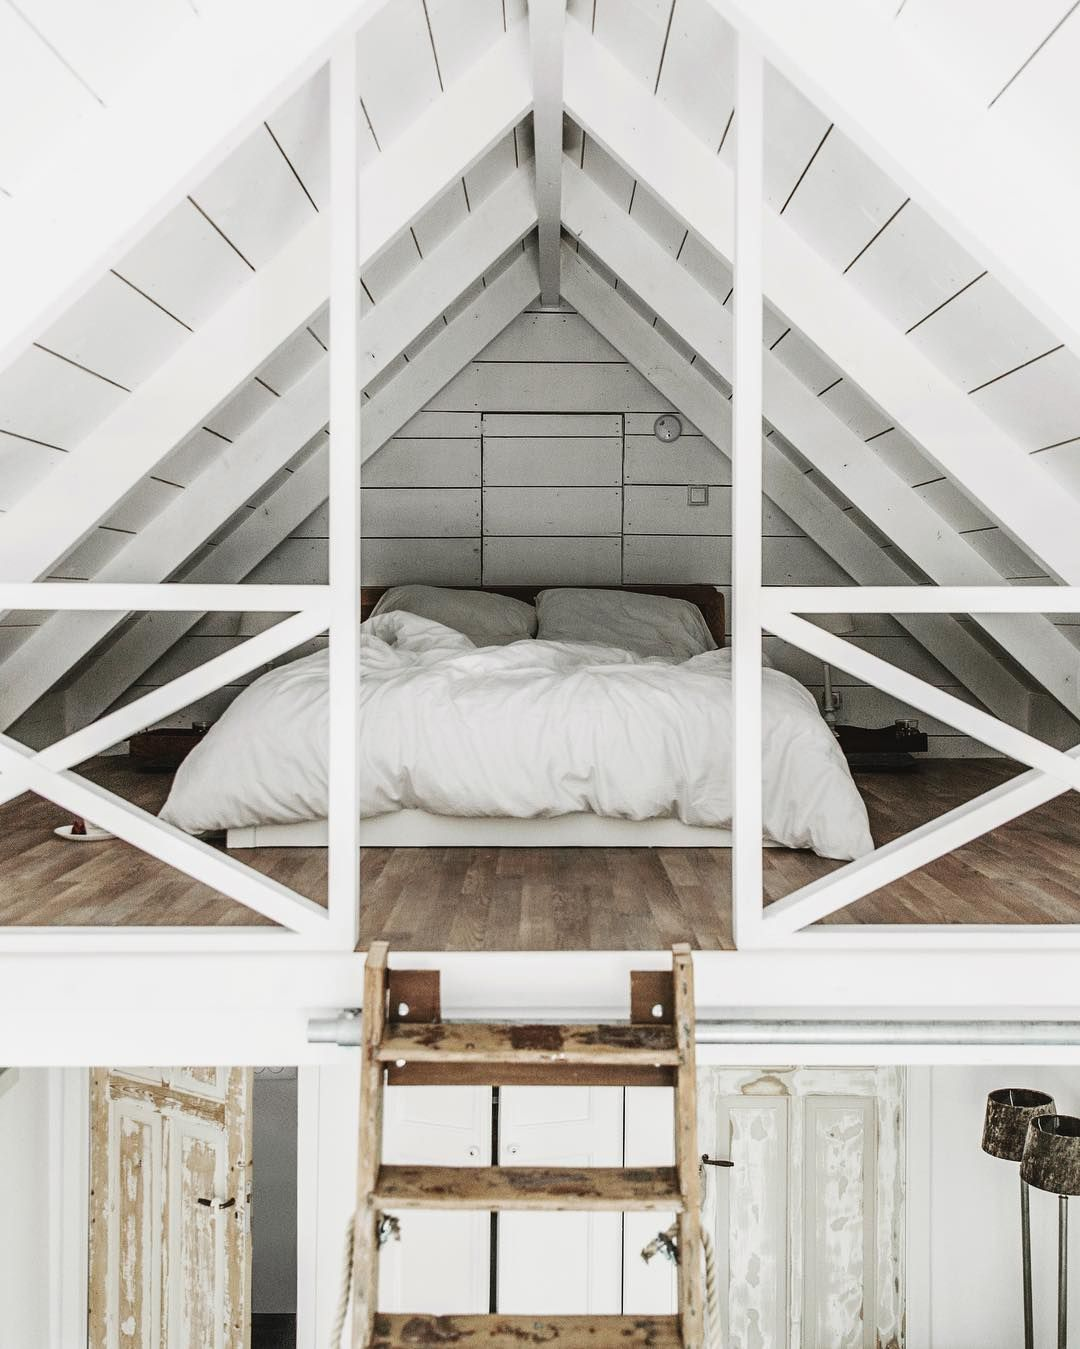 Mezzanine loft bedroom ideas  Attic Bedroom Ideas and Designs Must You Need To Know  Attic